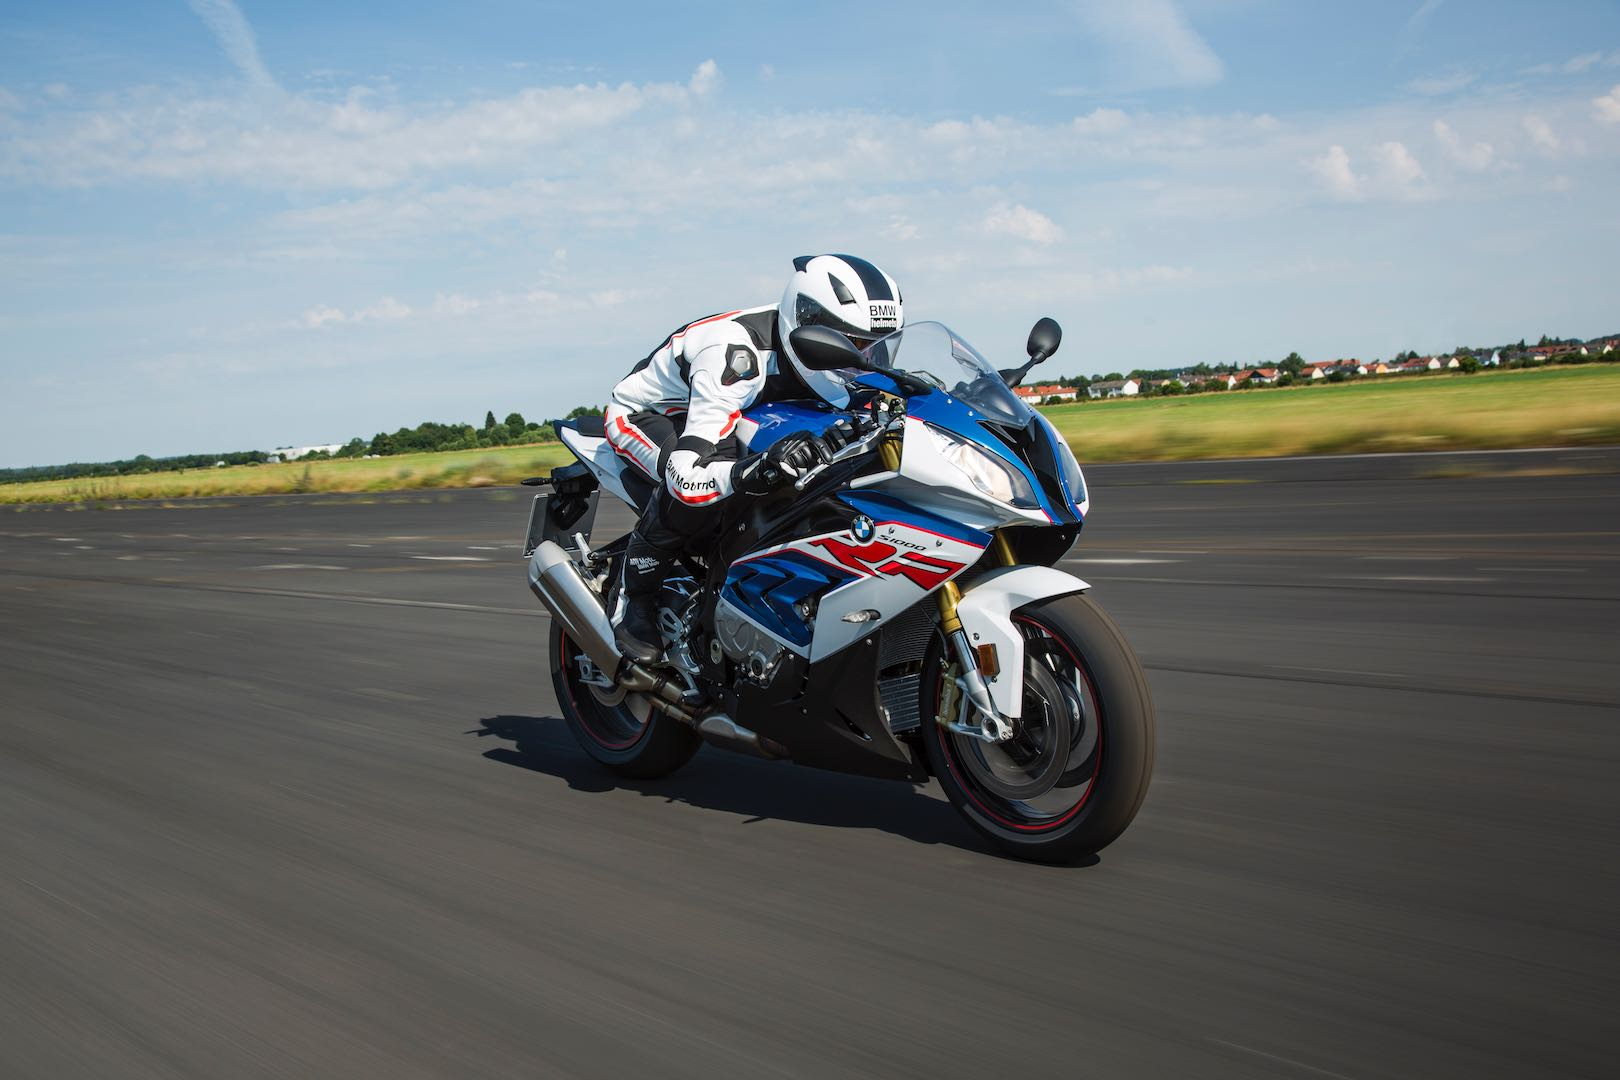 2017 BMW S 1000 RR First Look | 7 Updates & Photo Gallery